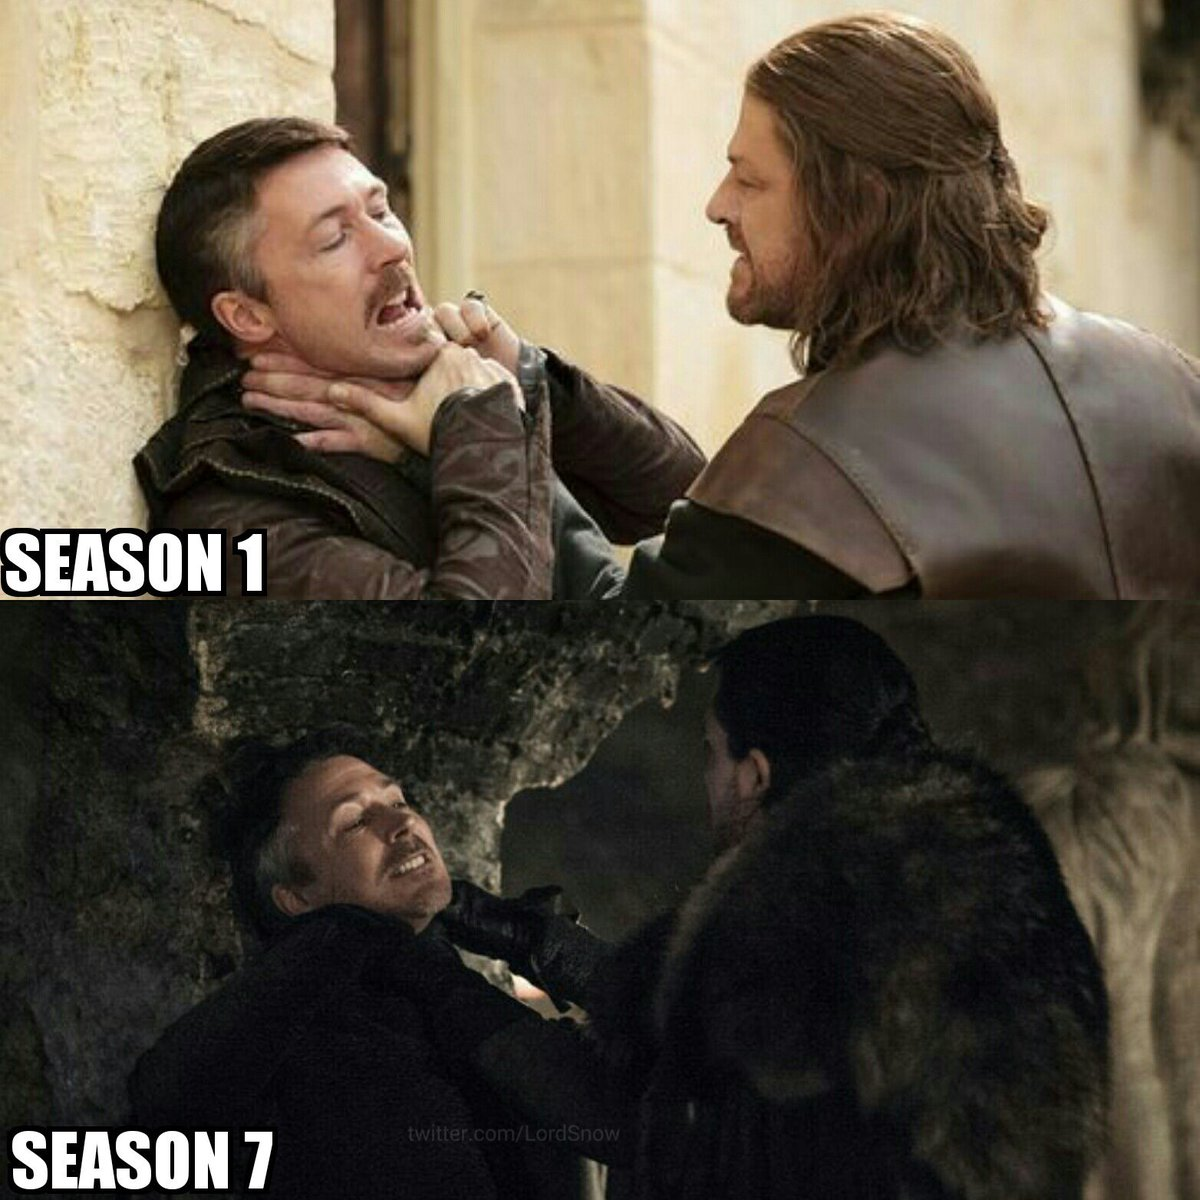 Good times with Petyr Baelish. #GameOfThrones  <br>http://pic.twitter.com/1wXyizhC7U